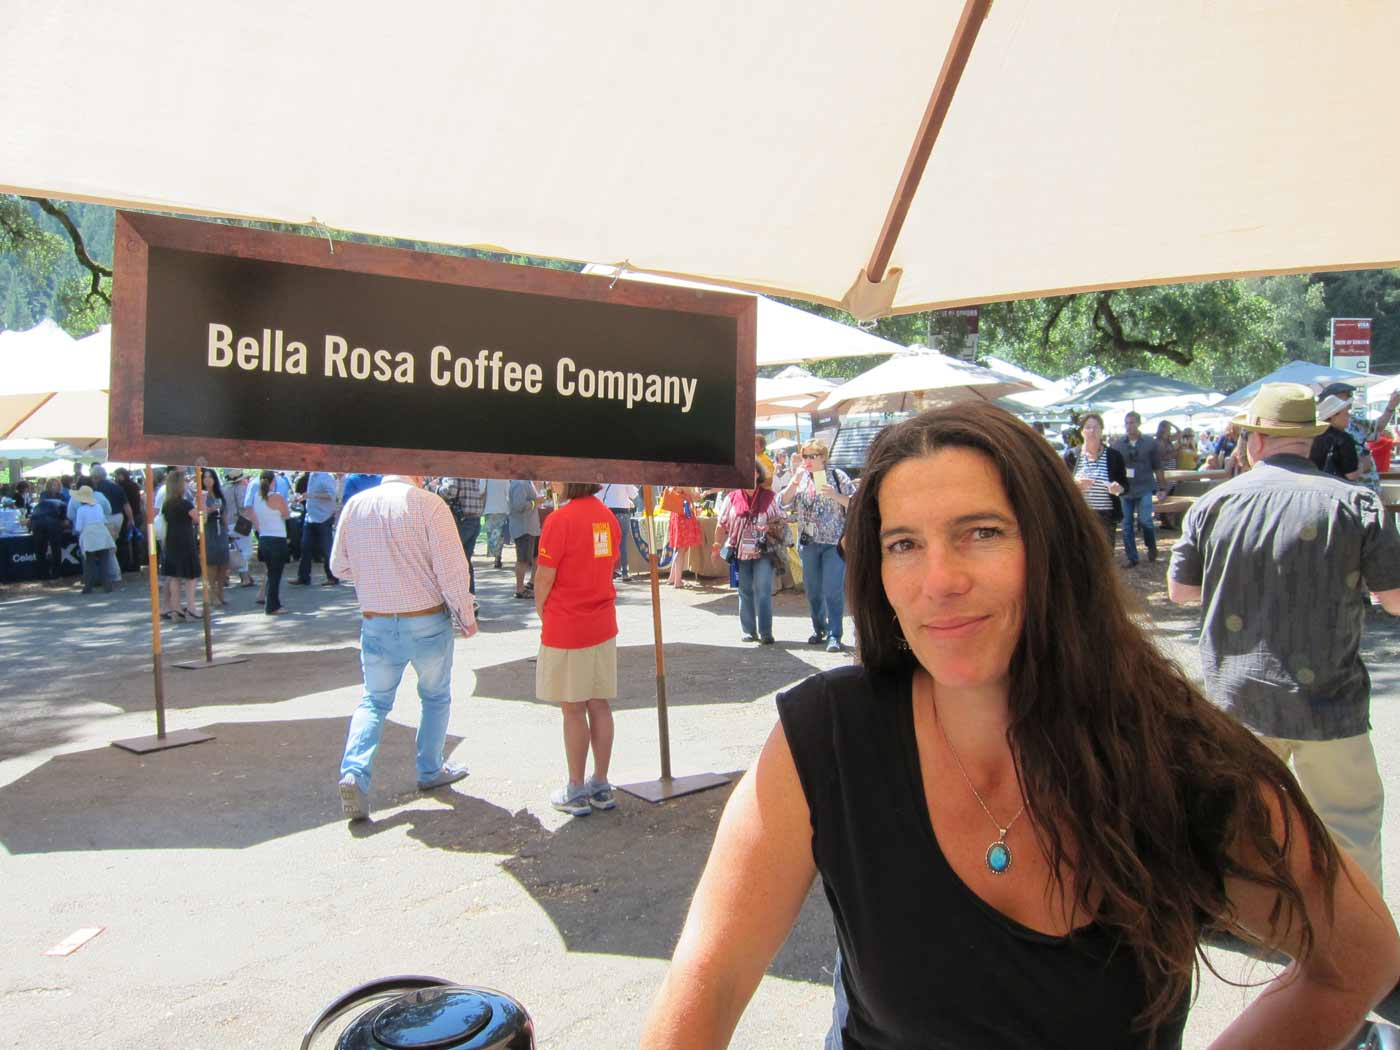 Bella Rosa Coffee Company